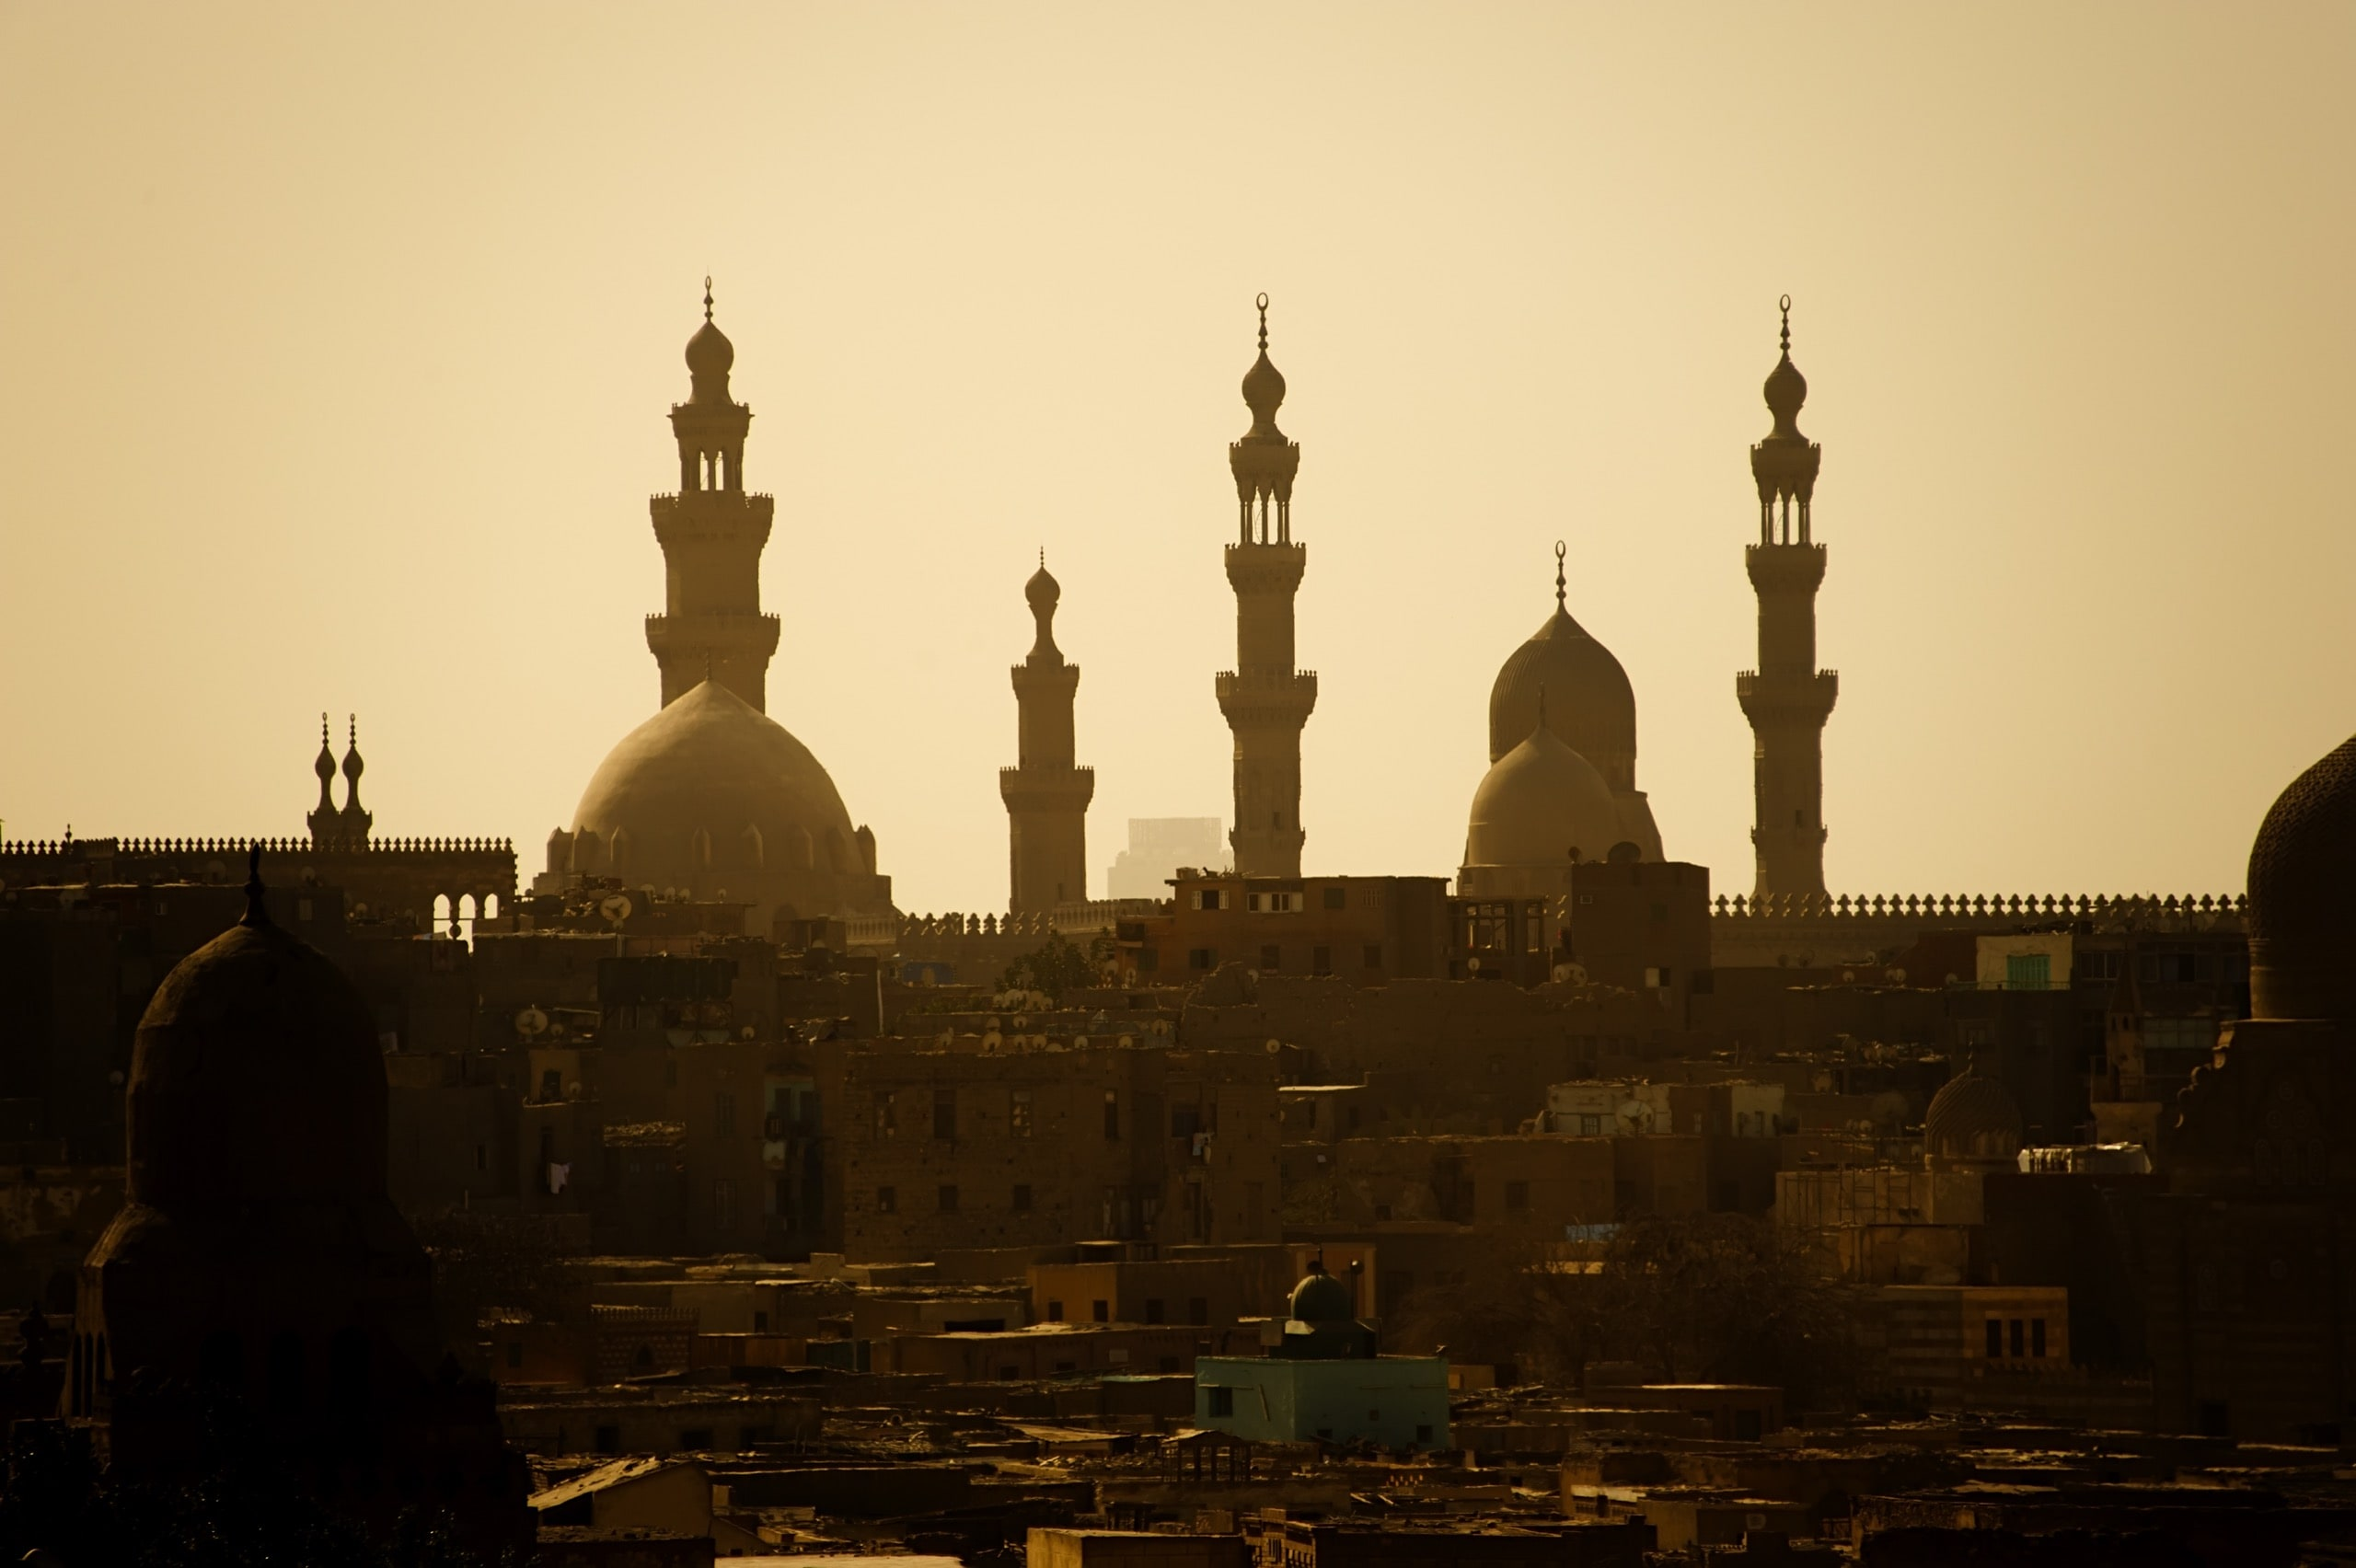 traditional mosque in the urban district of Cairo city